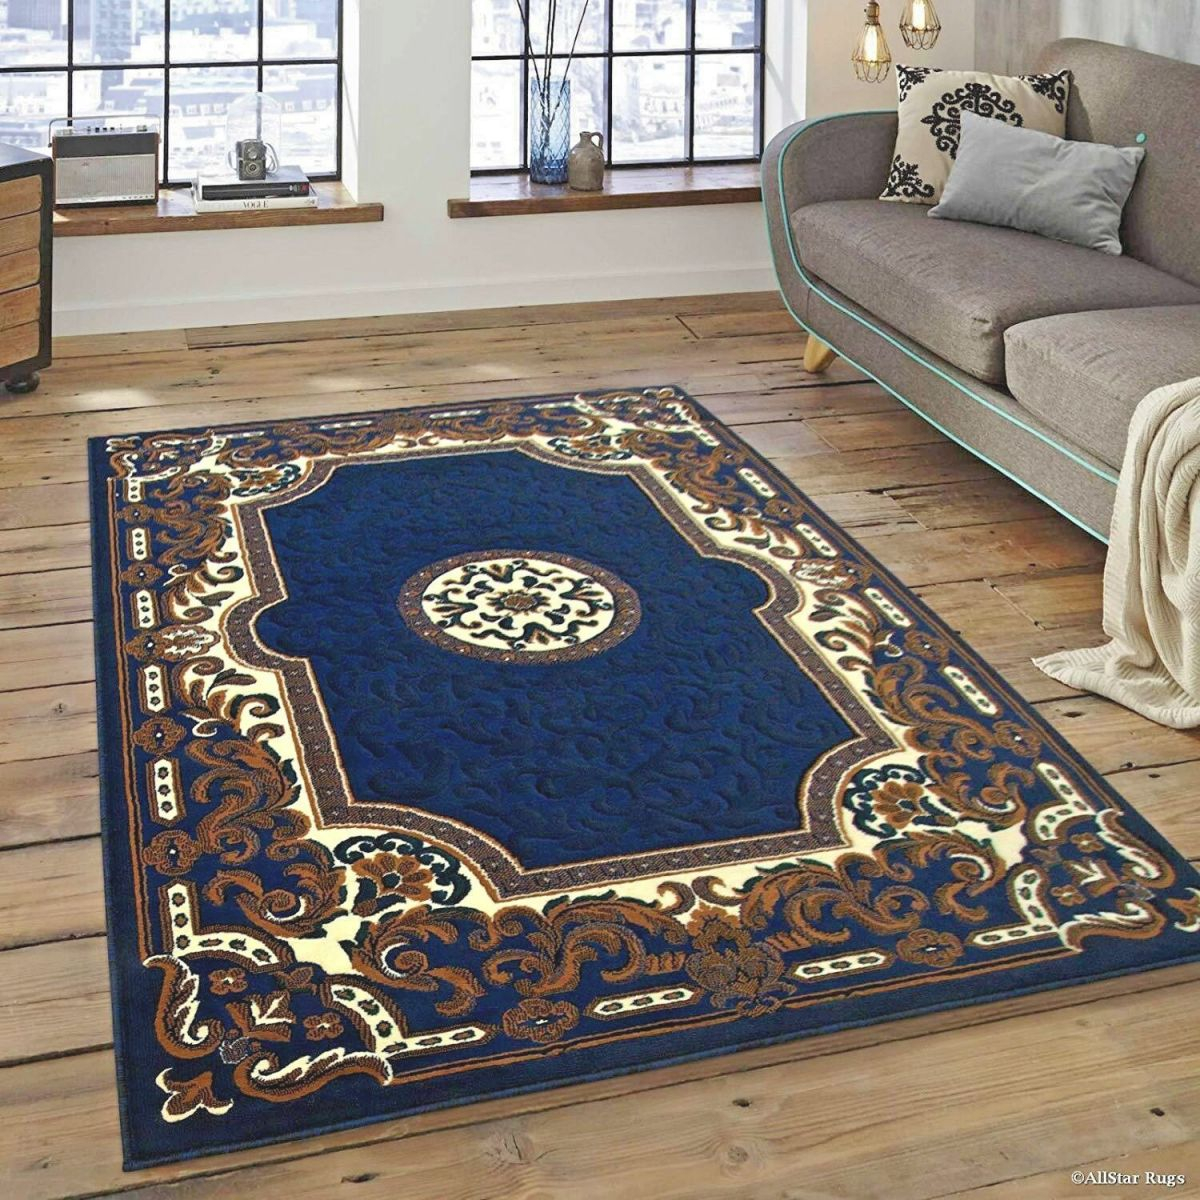 Details About Rugs Area Rugs Carpet 8X10 Rug Oriental Living Room Large Floor 5X7 Blue Rugs ~~ throughout Awesome Ideas For Big Area Rugs For Living Room